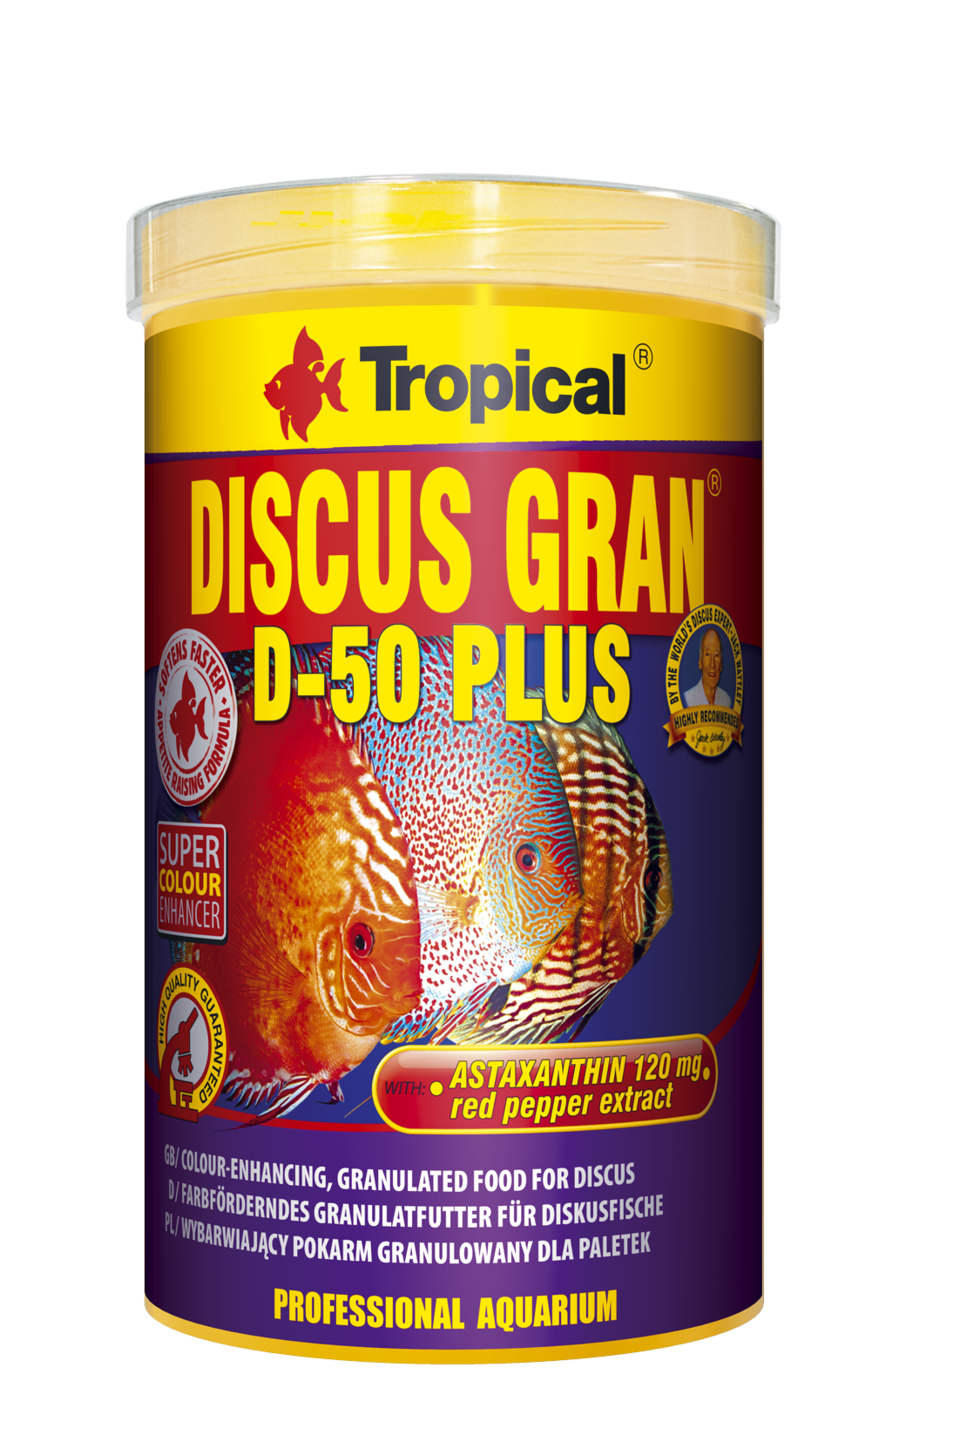 TROPICAL Discus Gran D-50 Plus 250ml granules descendantes rehaussant la couleur pour discus